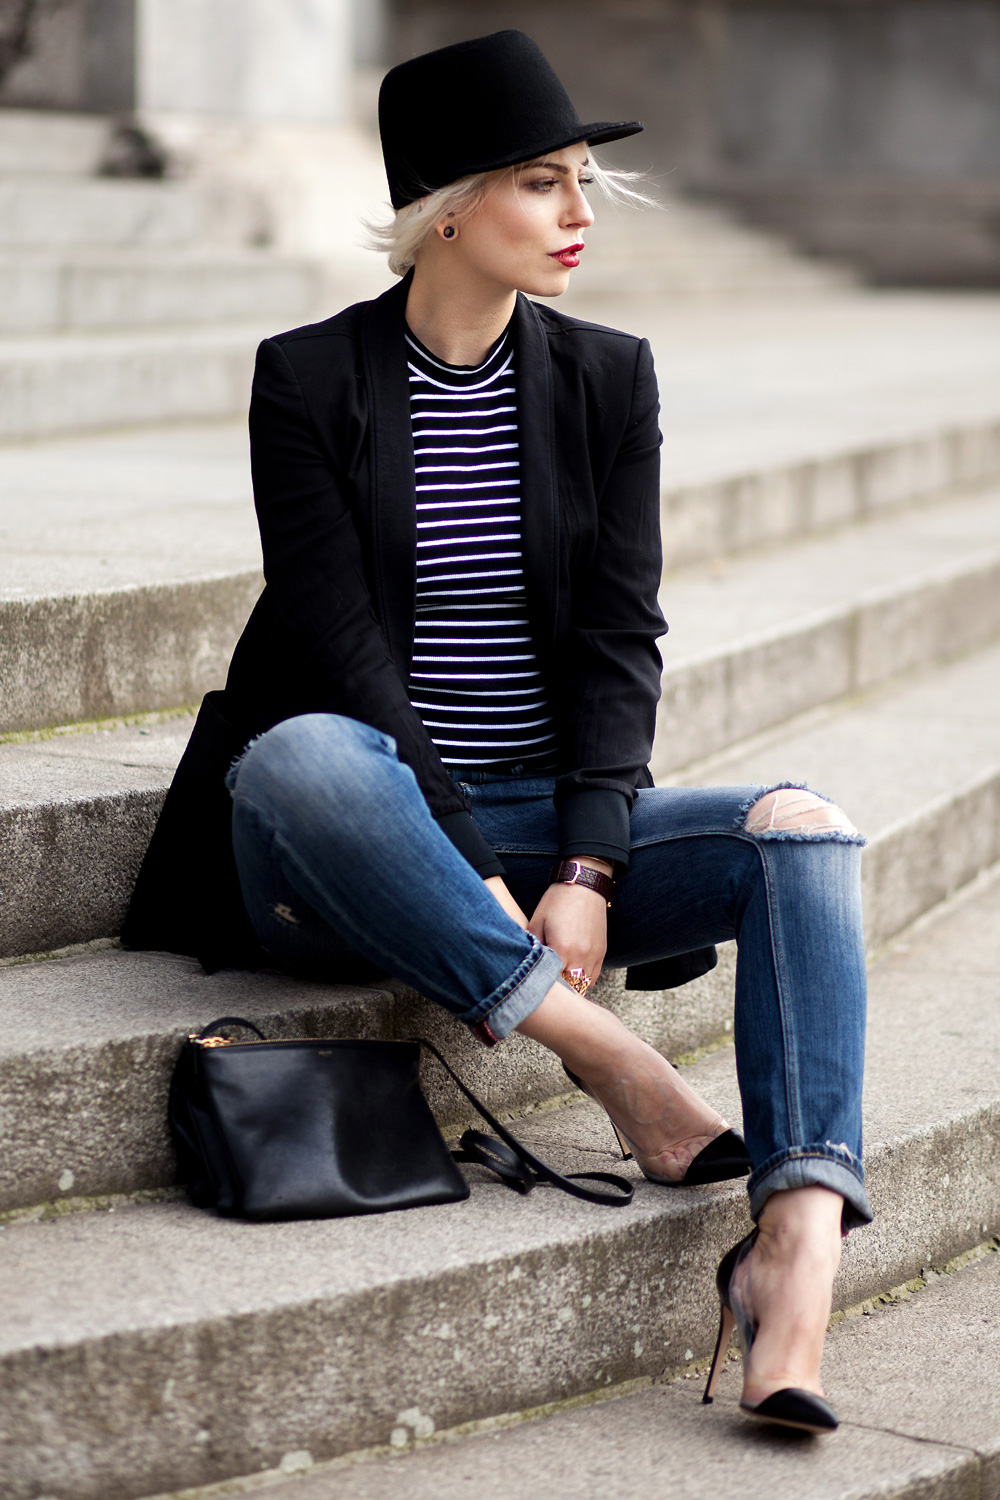 elegant | view more details on my blog | stripes | outfit | fashion | street style from Berlin | chic | wearing Celine Trio, Cartier watch and ring, Gianvito Rossi transparent shoes | lose fit jeans